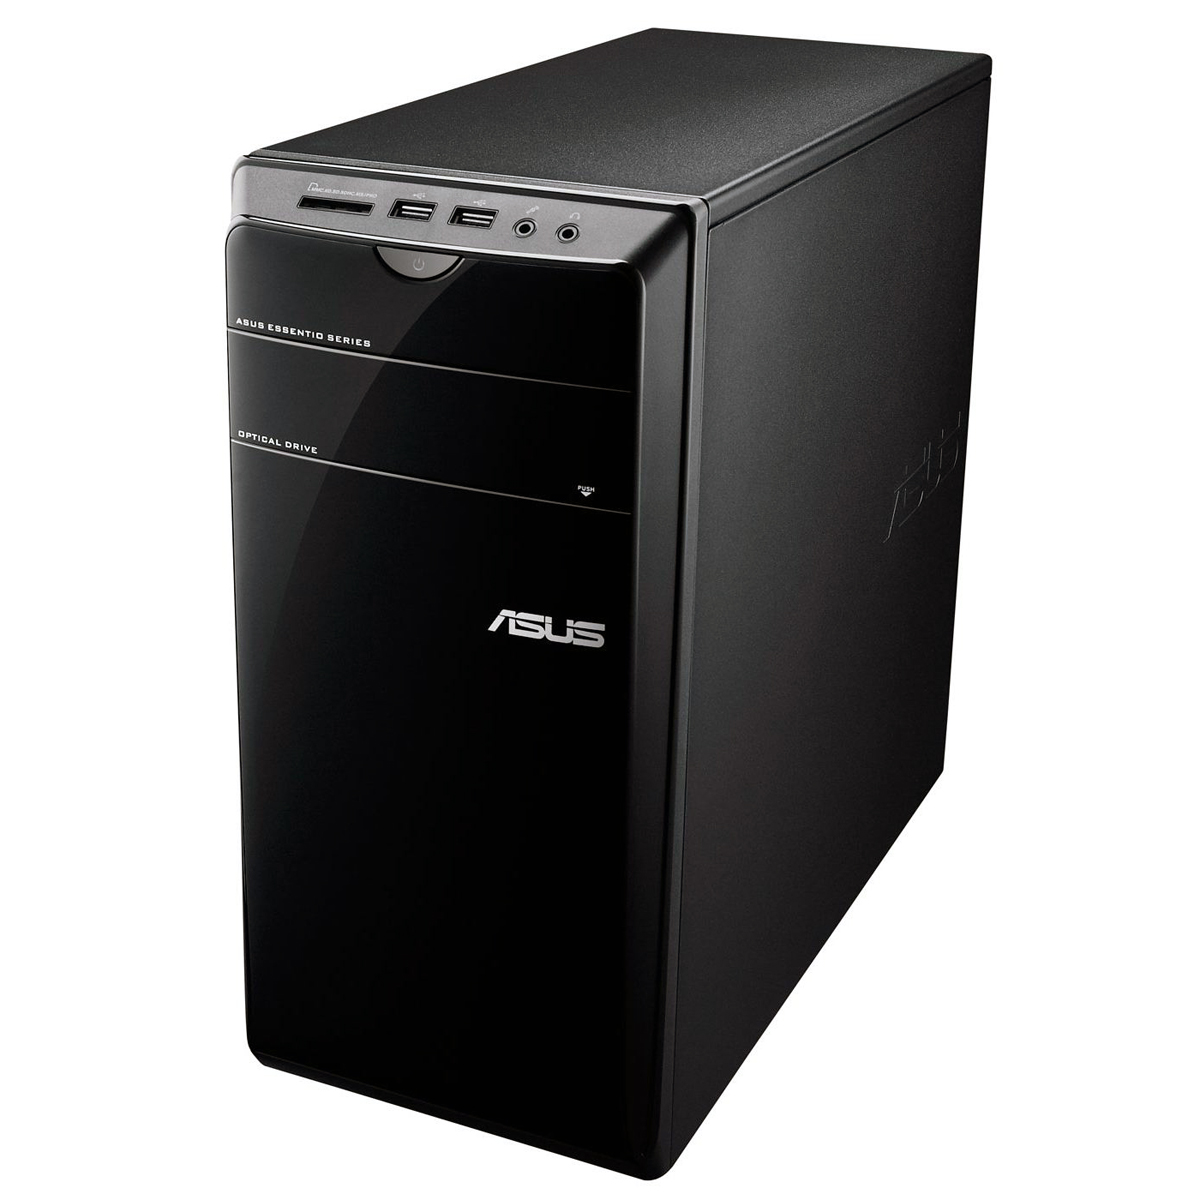 asus essentio cm6730 fr004s cm6730 fr004s achat vente pc de bureau sur. Black Bedroom Furniture Sets. Home Design Ideas